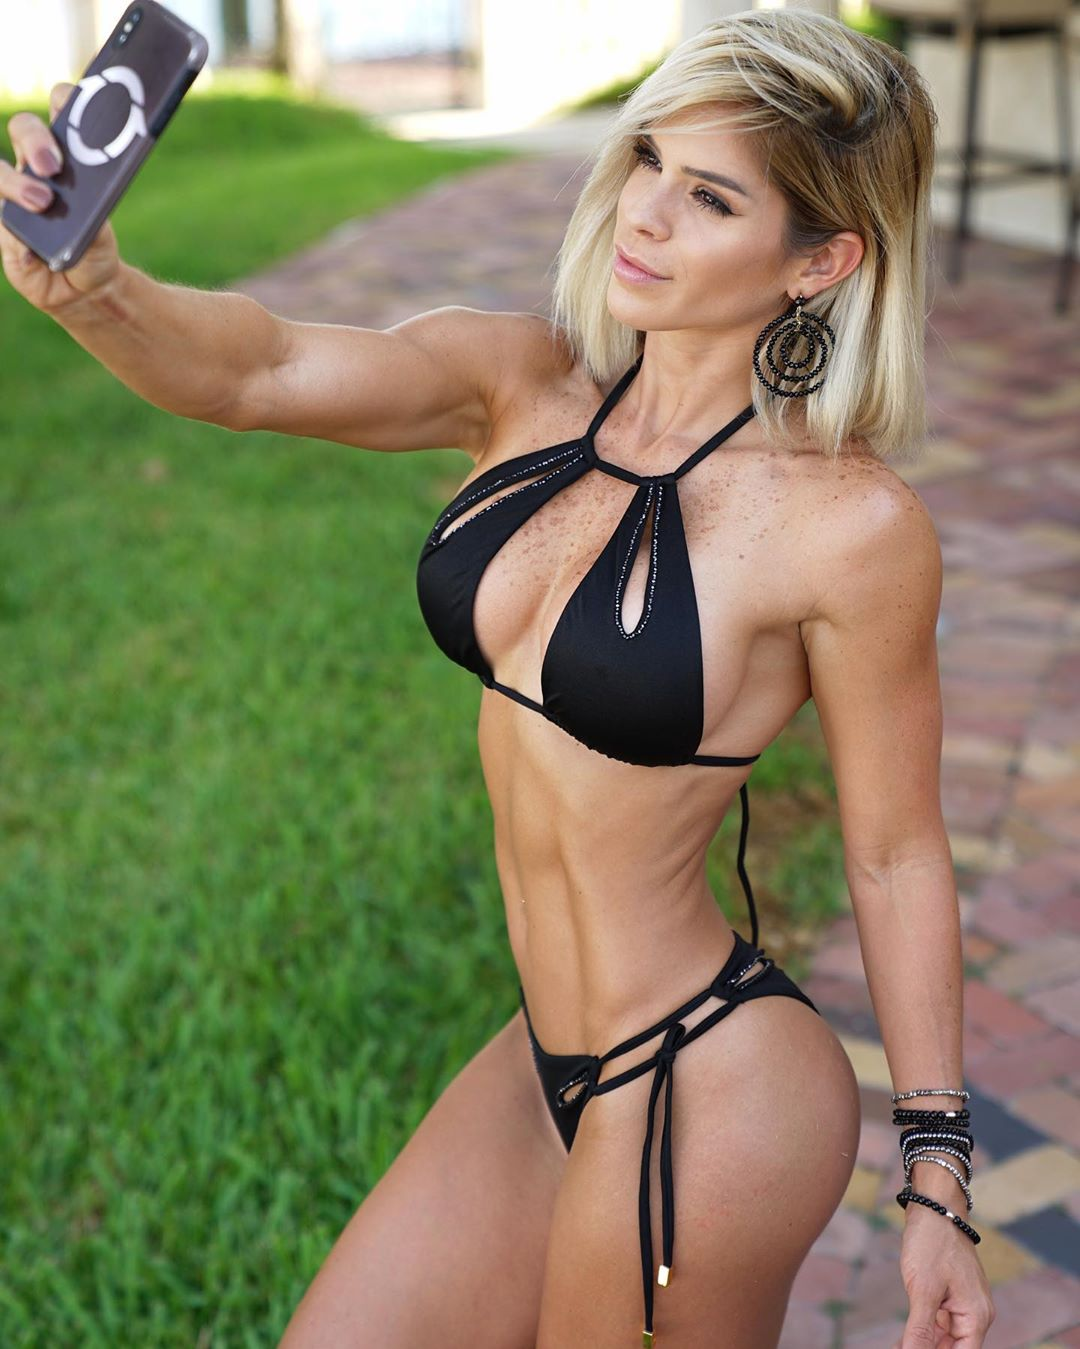 Michelle Lewin Workout Routine And Diet Plan 2020 - Health